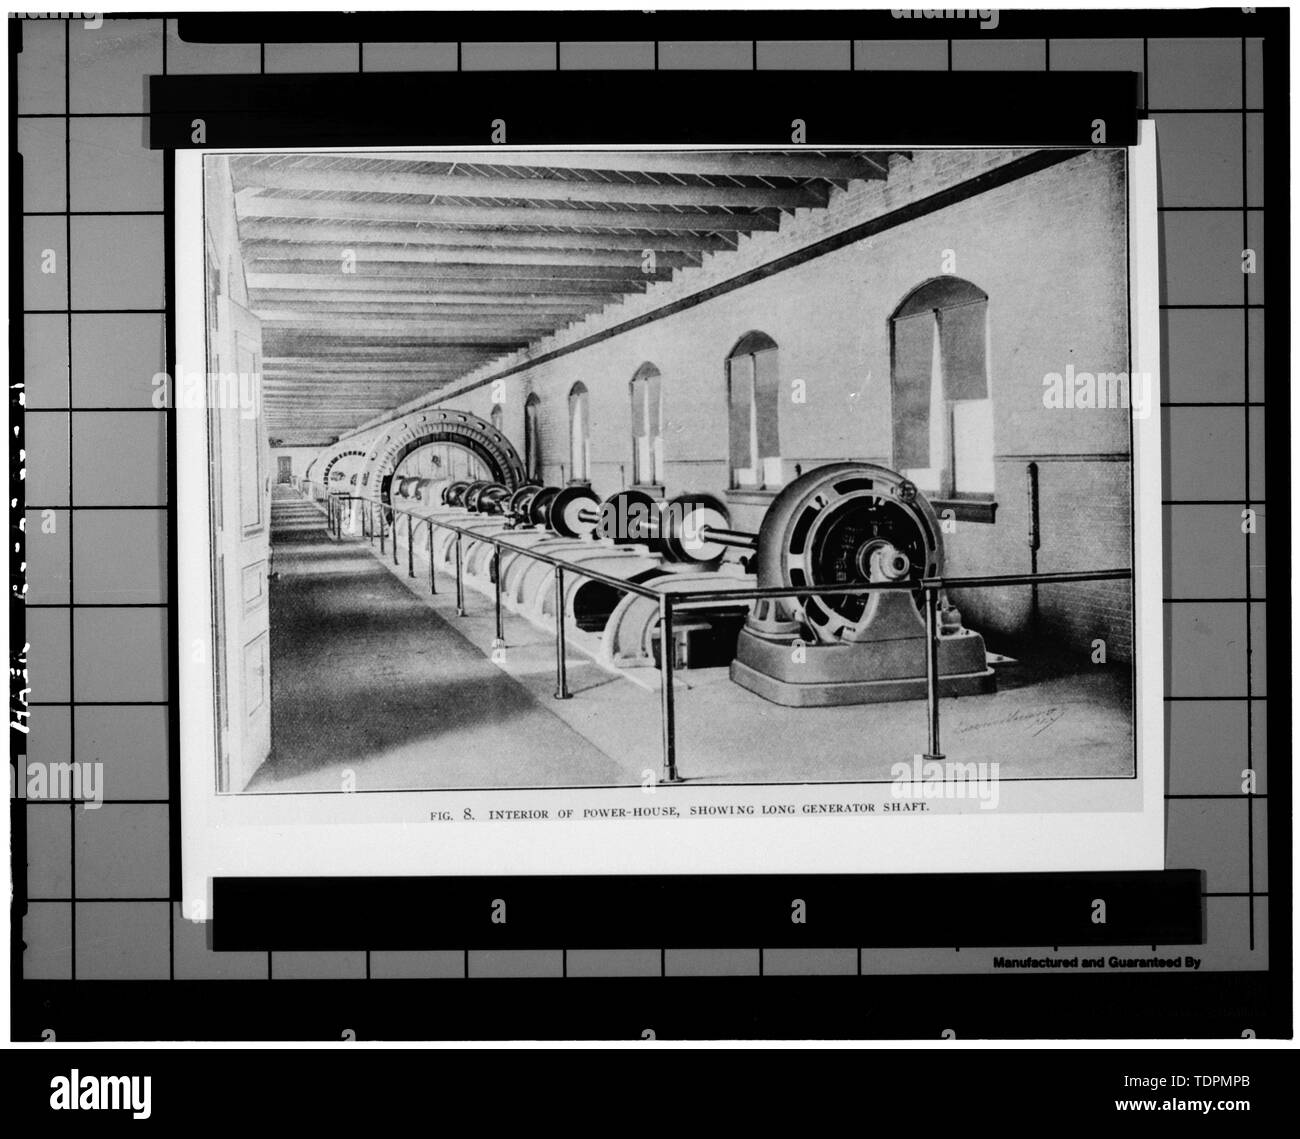 Photograph of a photograph in possession of Rock Island Arsenal Historical Office. ORIGINAL HORIZONTAL SHAFTING OF GENERAL ELECTRIC GENERATORS. ORIGINALLY PUBLISHED IN 1905. - Rock Island Arsenal, Building No. 160, Sylvan Drive, Rock Island, Rock Island County, IL; Central Engineering Company of Davenport - Stock Image